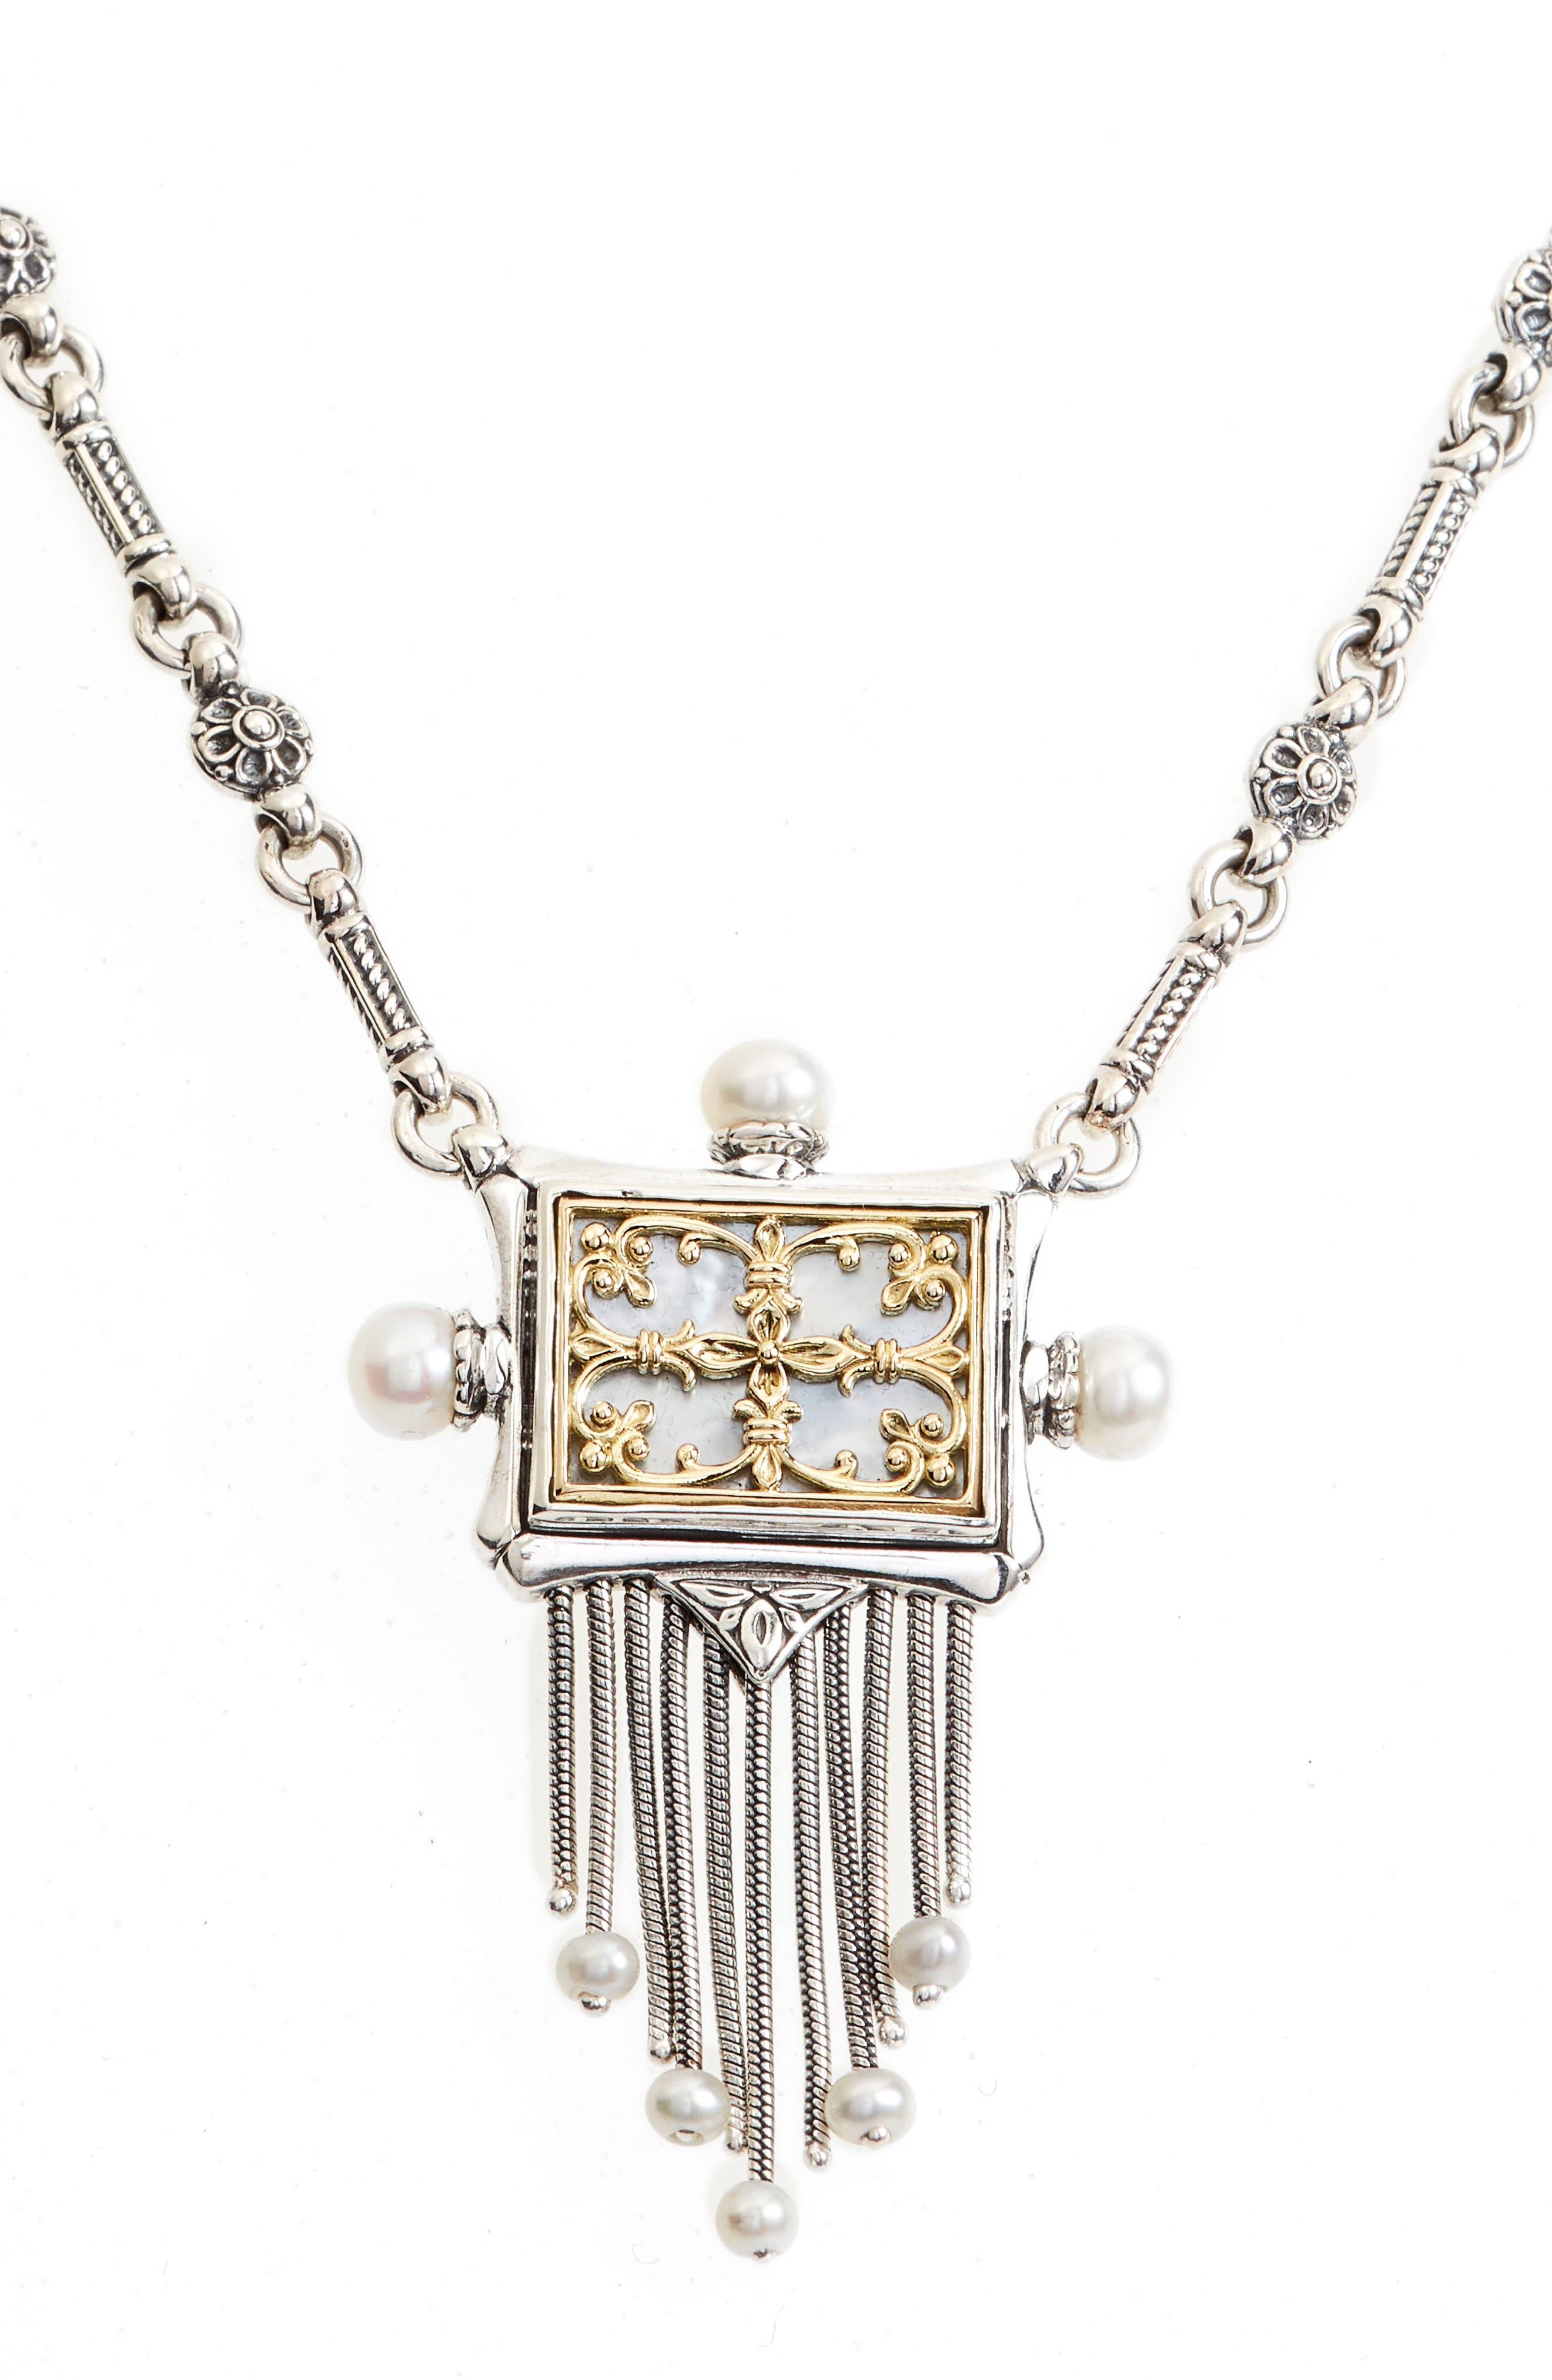 Etched Sterling Silver & Pearl Fringe Pendant,                         Main,                         color, SILVER/ GOLD/ WHITE